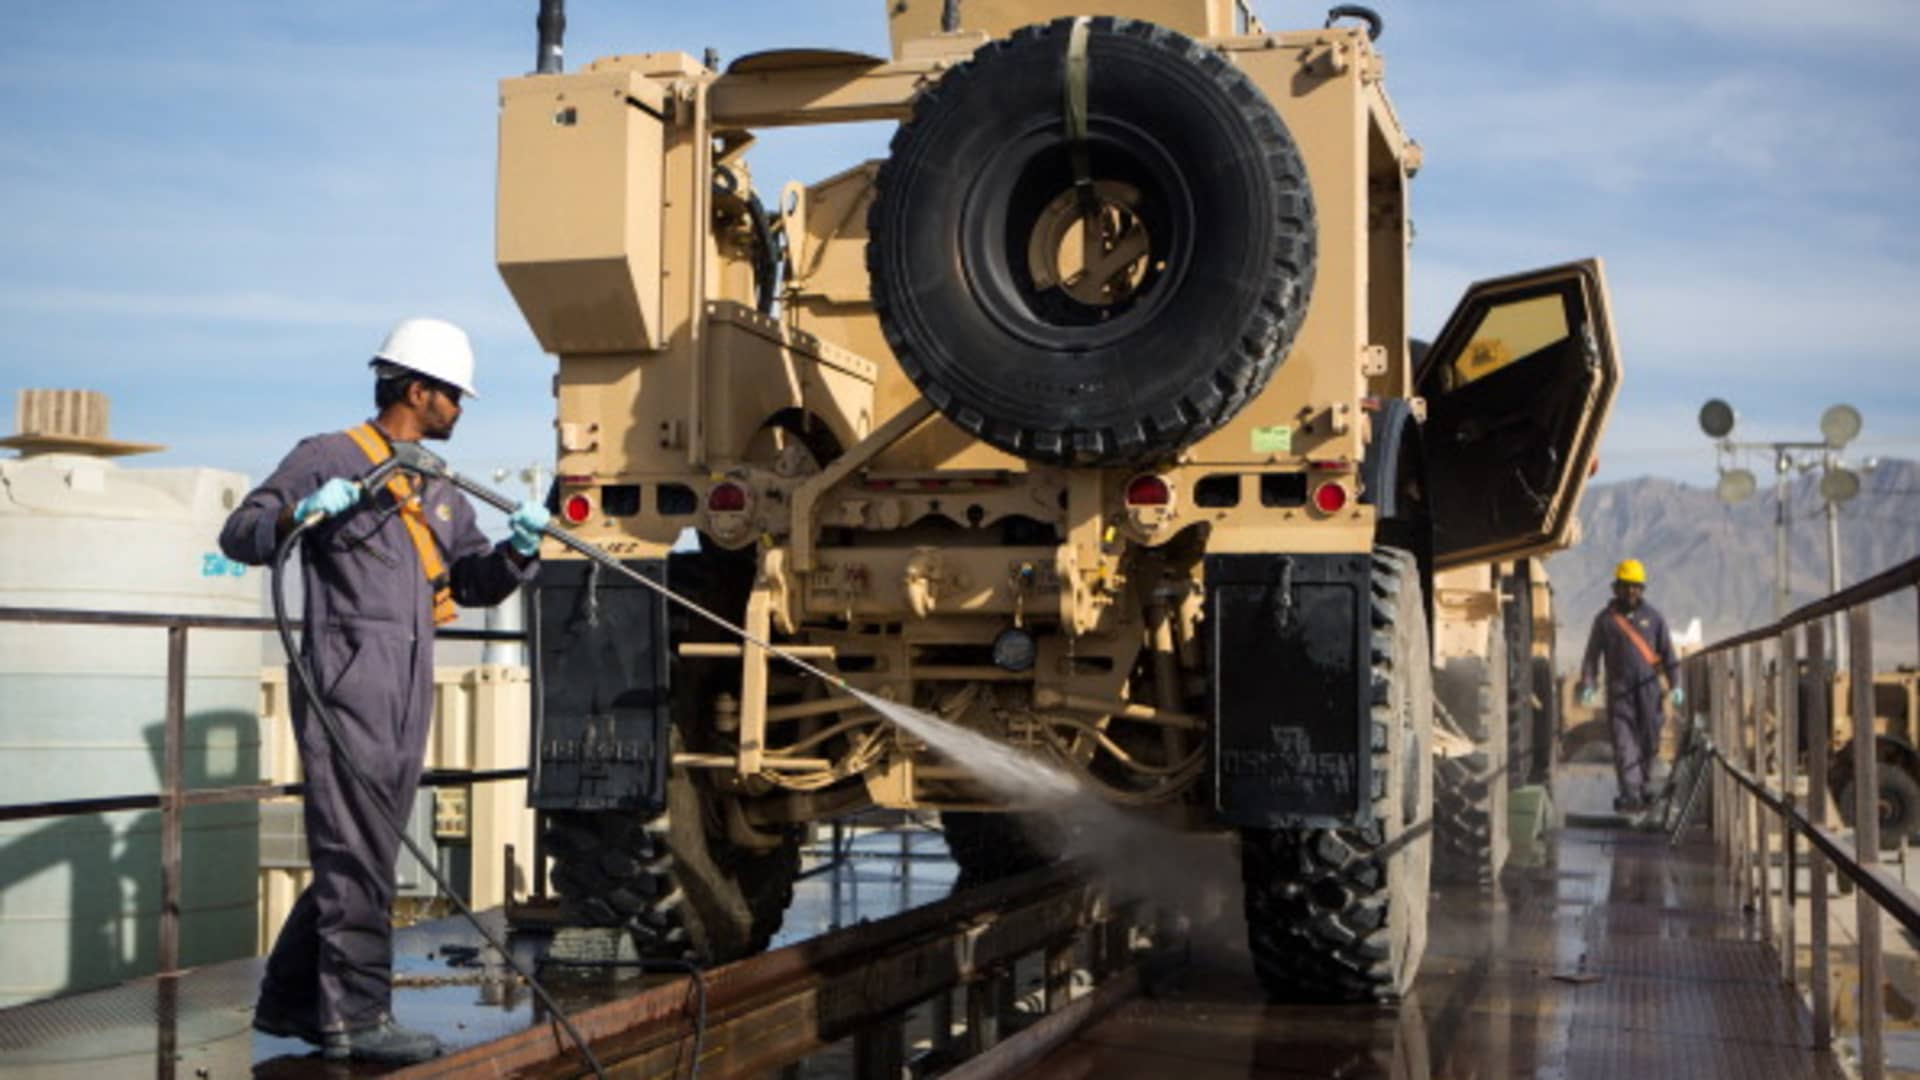 A civilian contractor power washes a Mine-Resistant All-Terrain Vehicle May 9, 2013 at Bagram Air Base, Afghanistan.